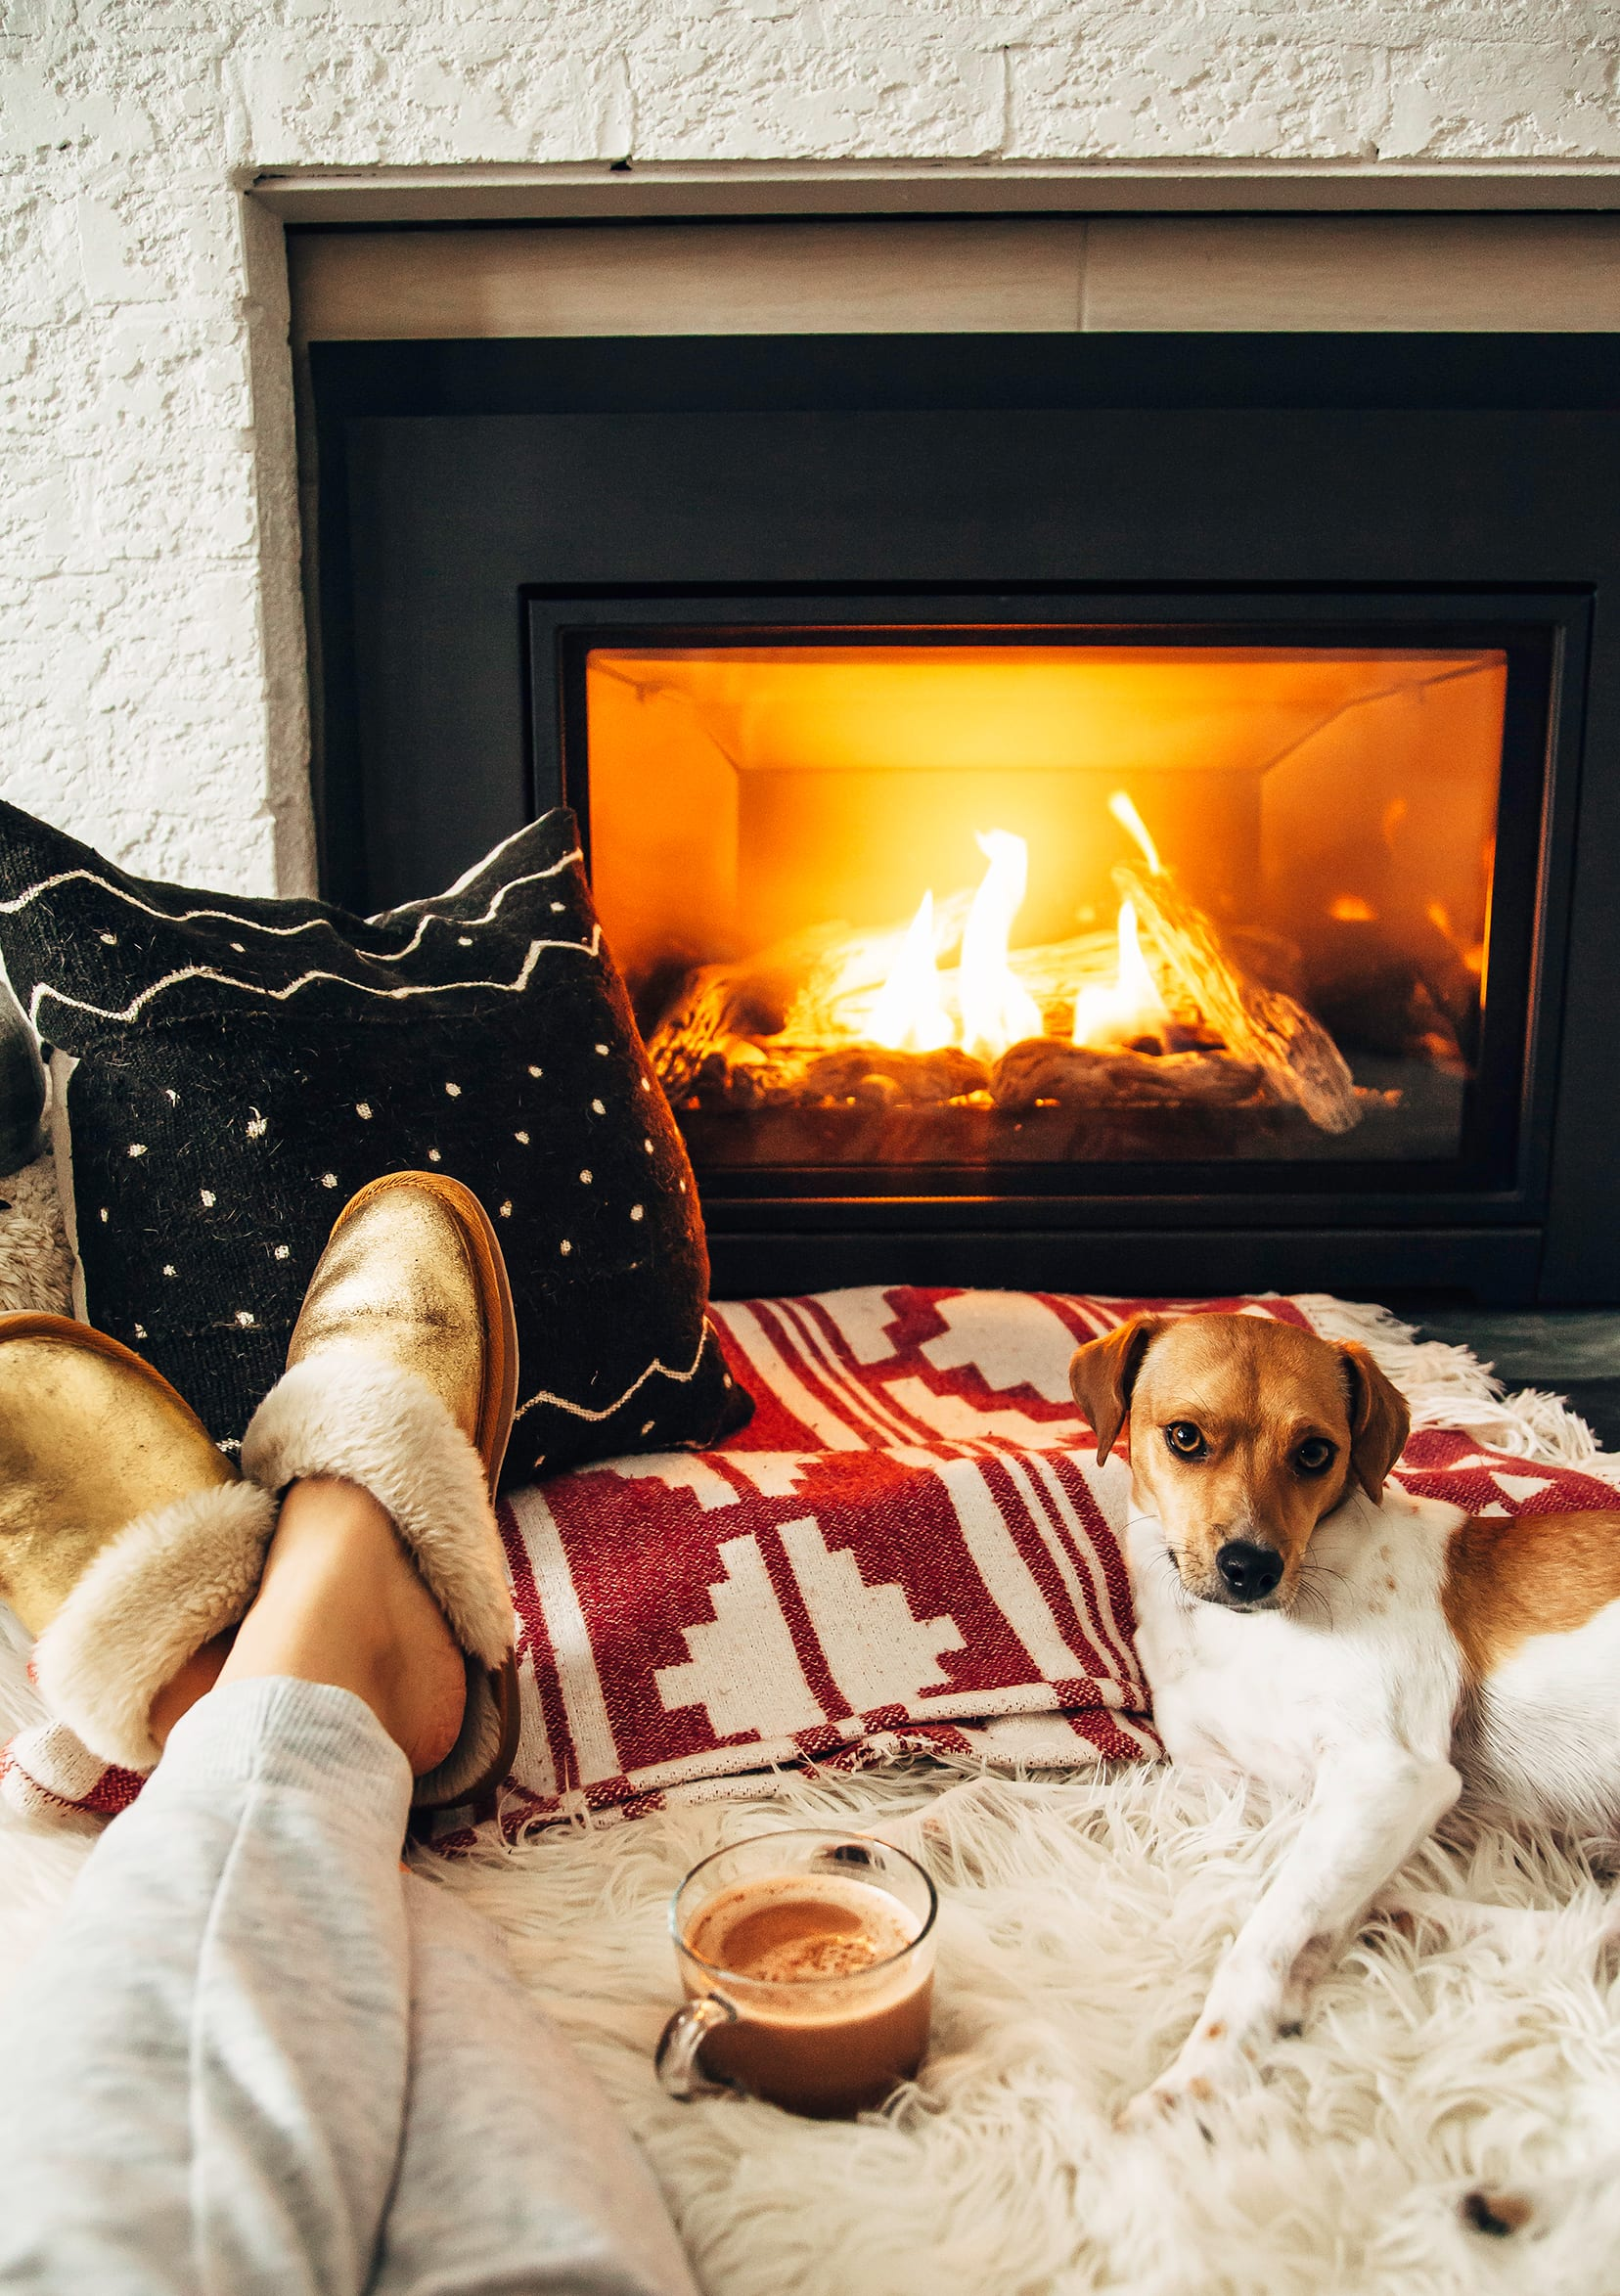 Image shows a cute dog lounging by a fireplace on some blankets and pillows. A mug of hot chocolate is seen nearby.